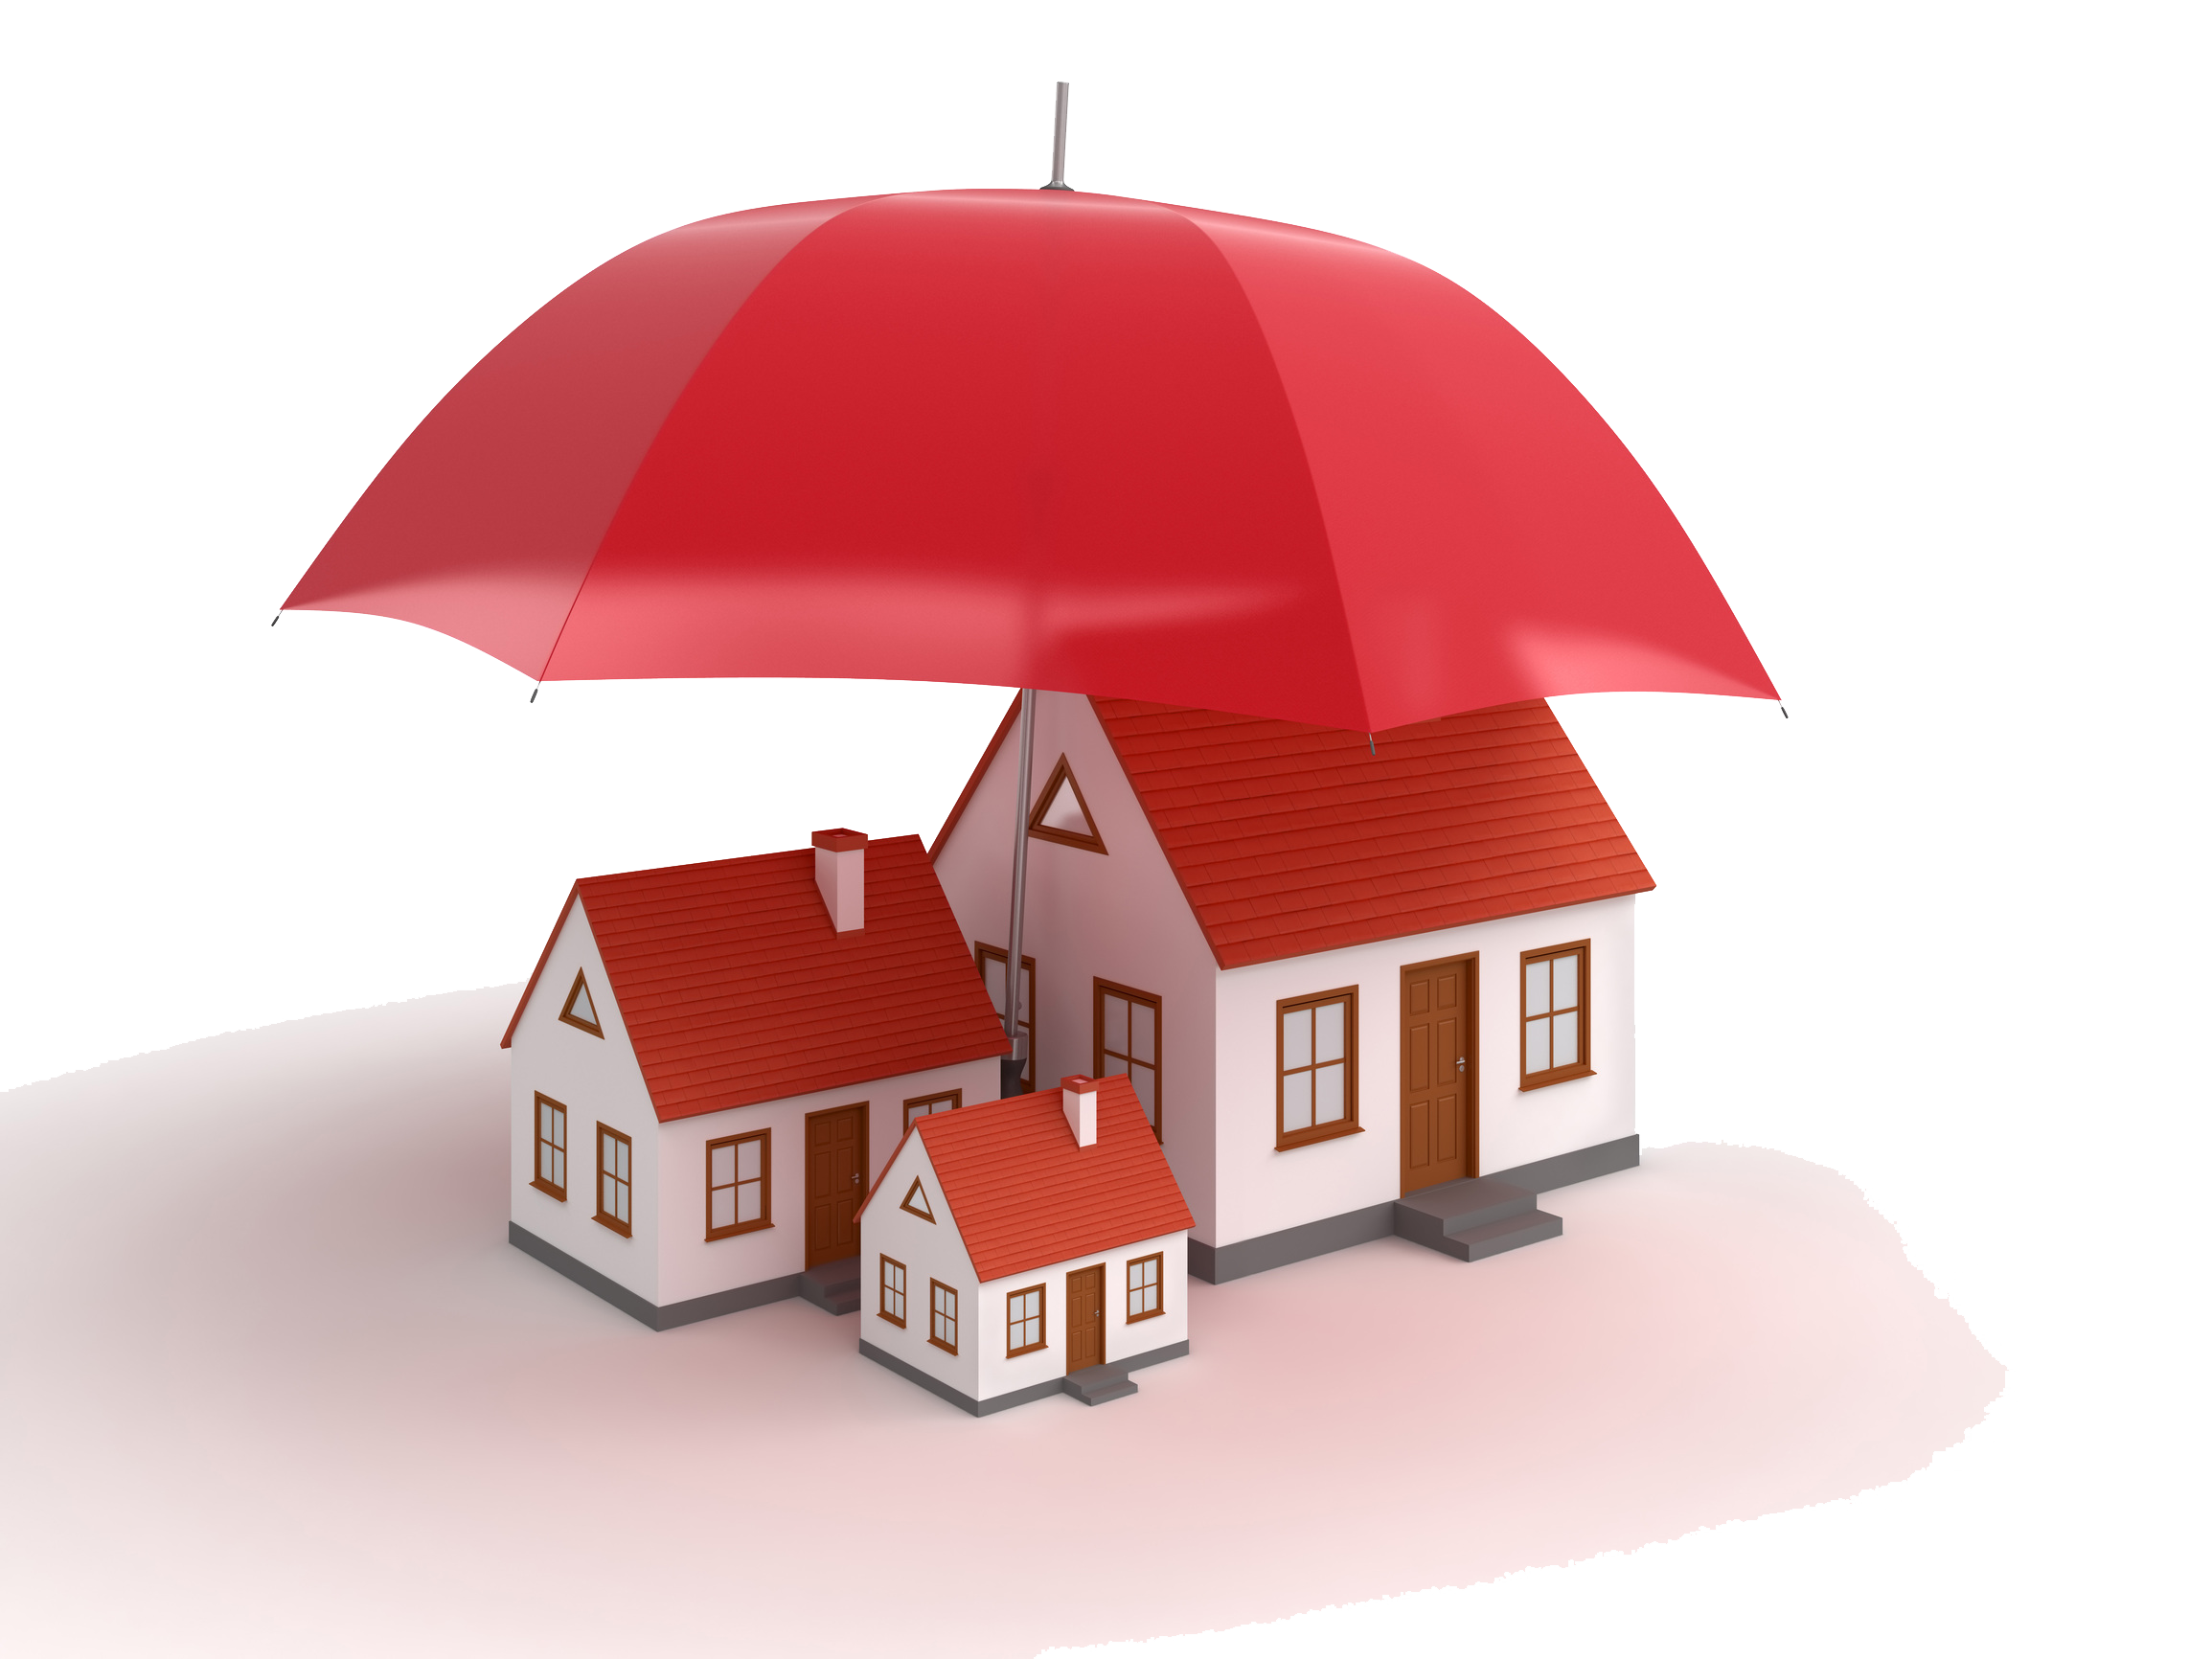 Set of three minature houses covered by one large red umbrella